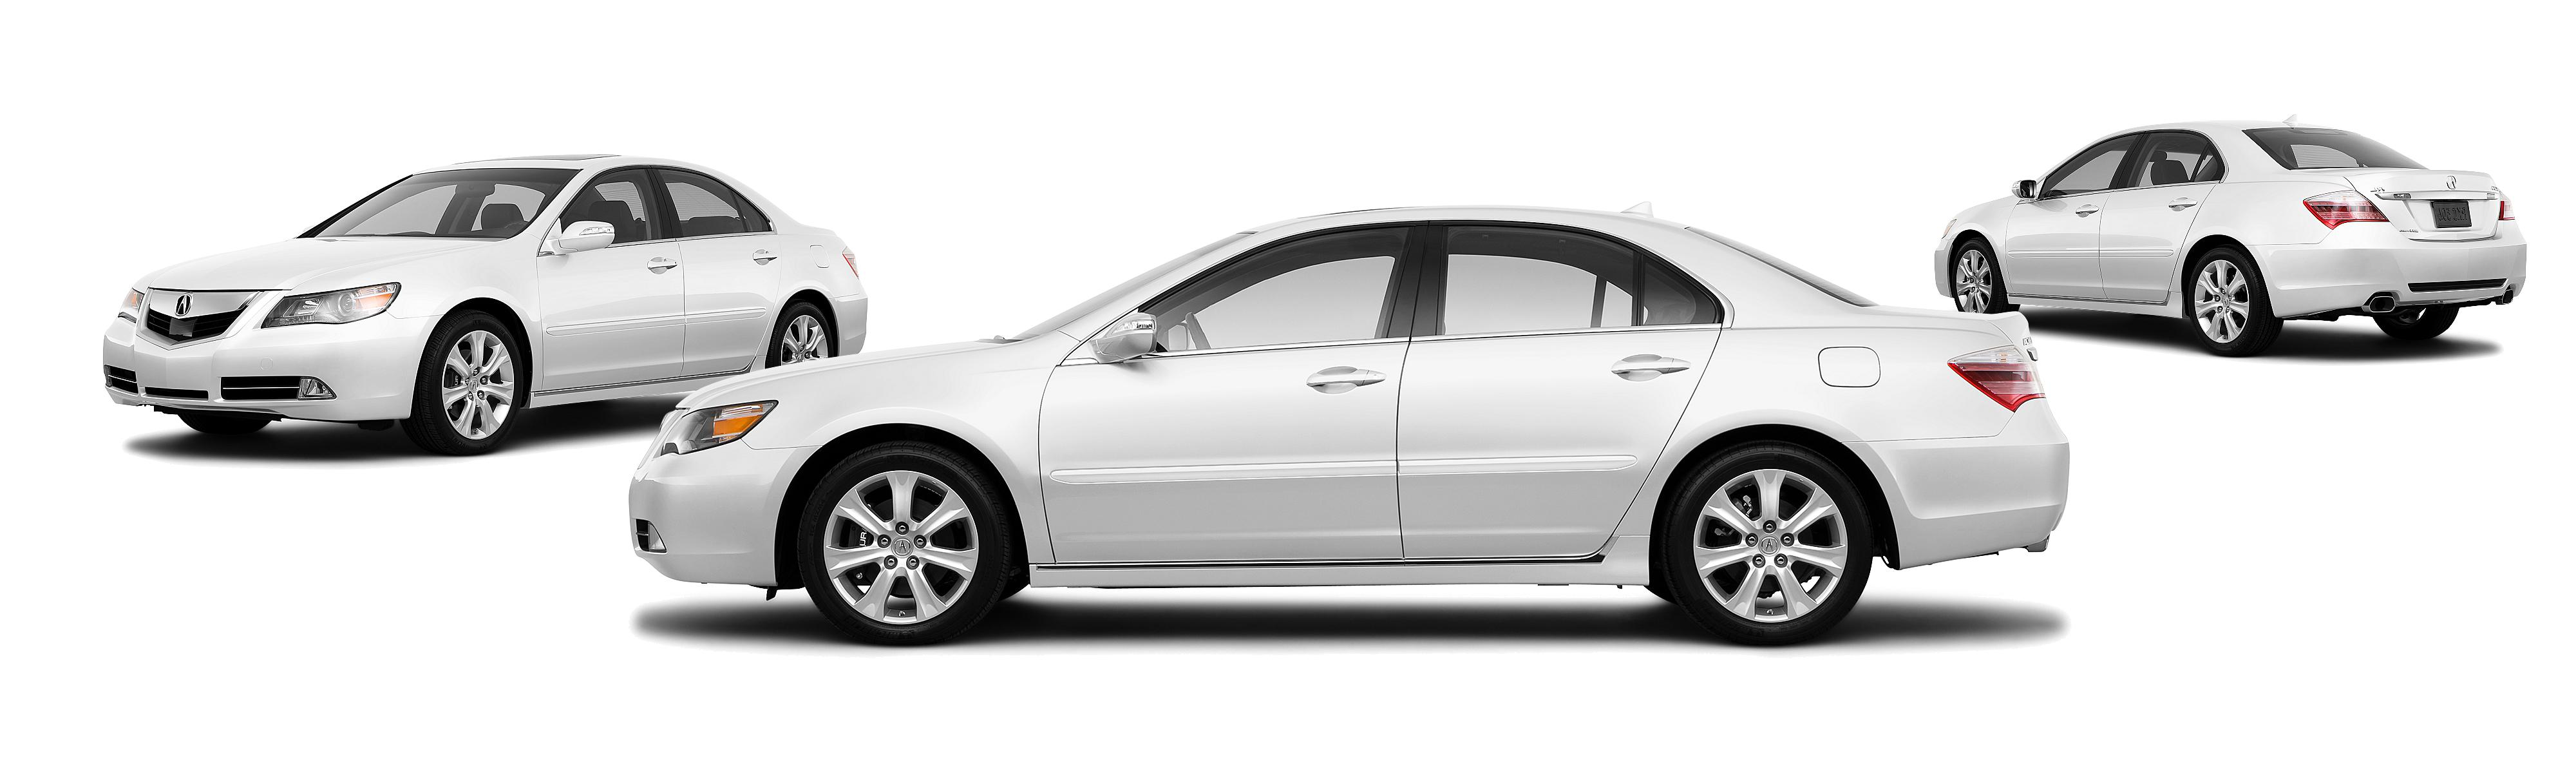 2010 Acura RL SH AWD 4dr Sedan w Technology Package CMBS ACC Package